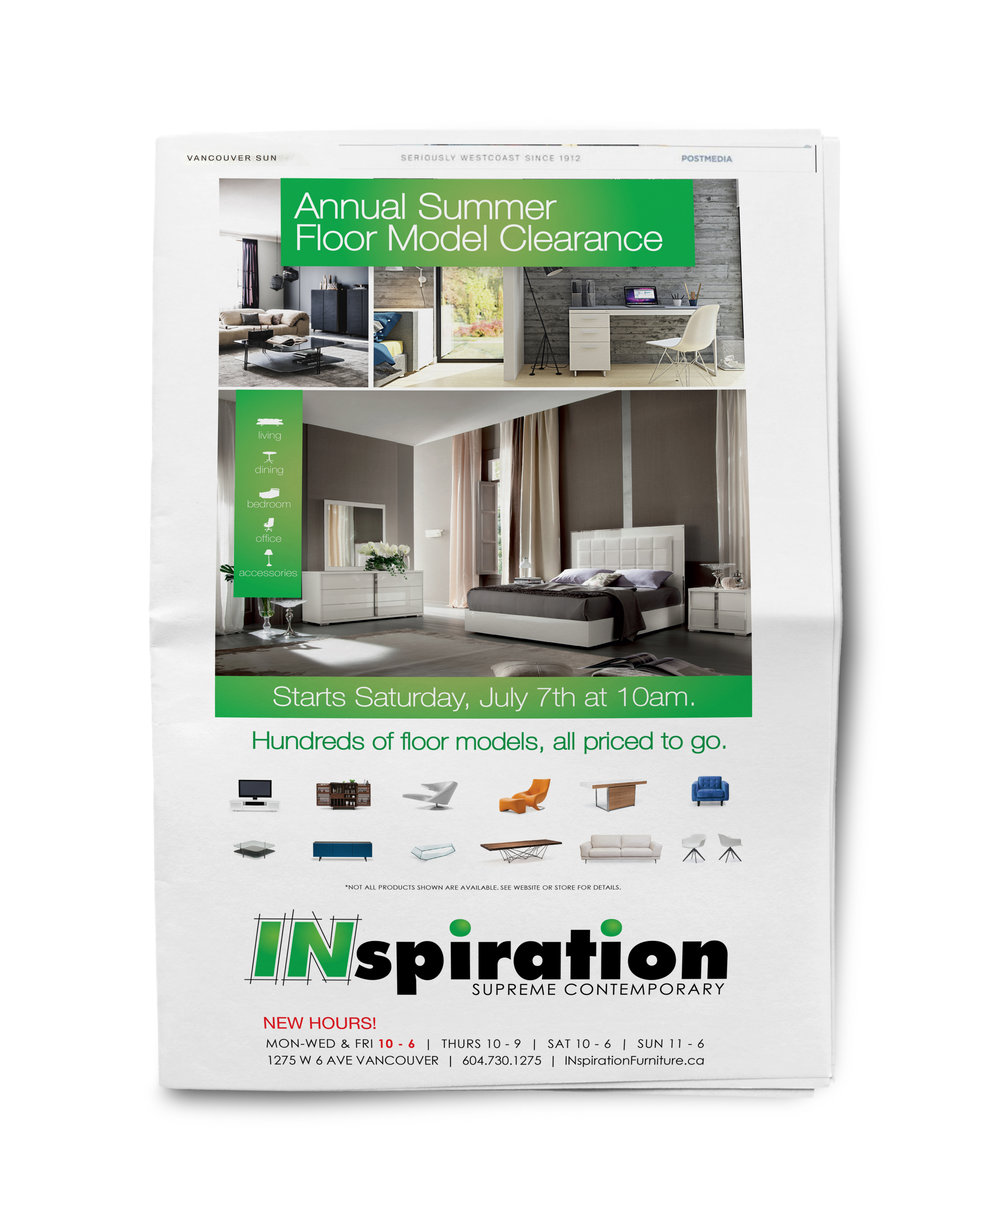 INspiration_Vancouver_Newspaper22.jpg